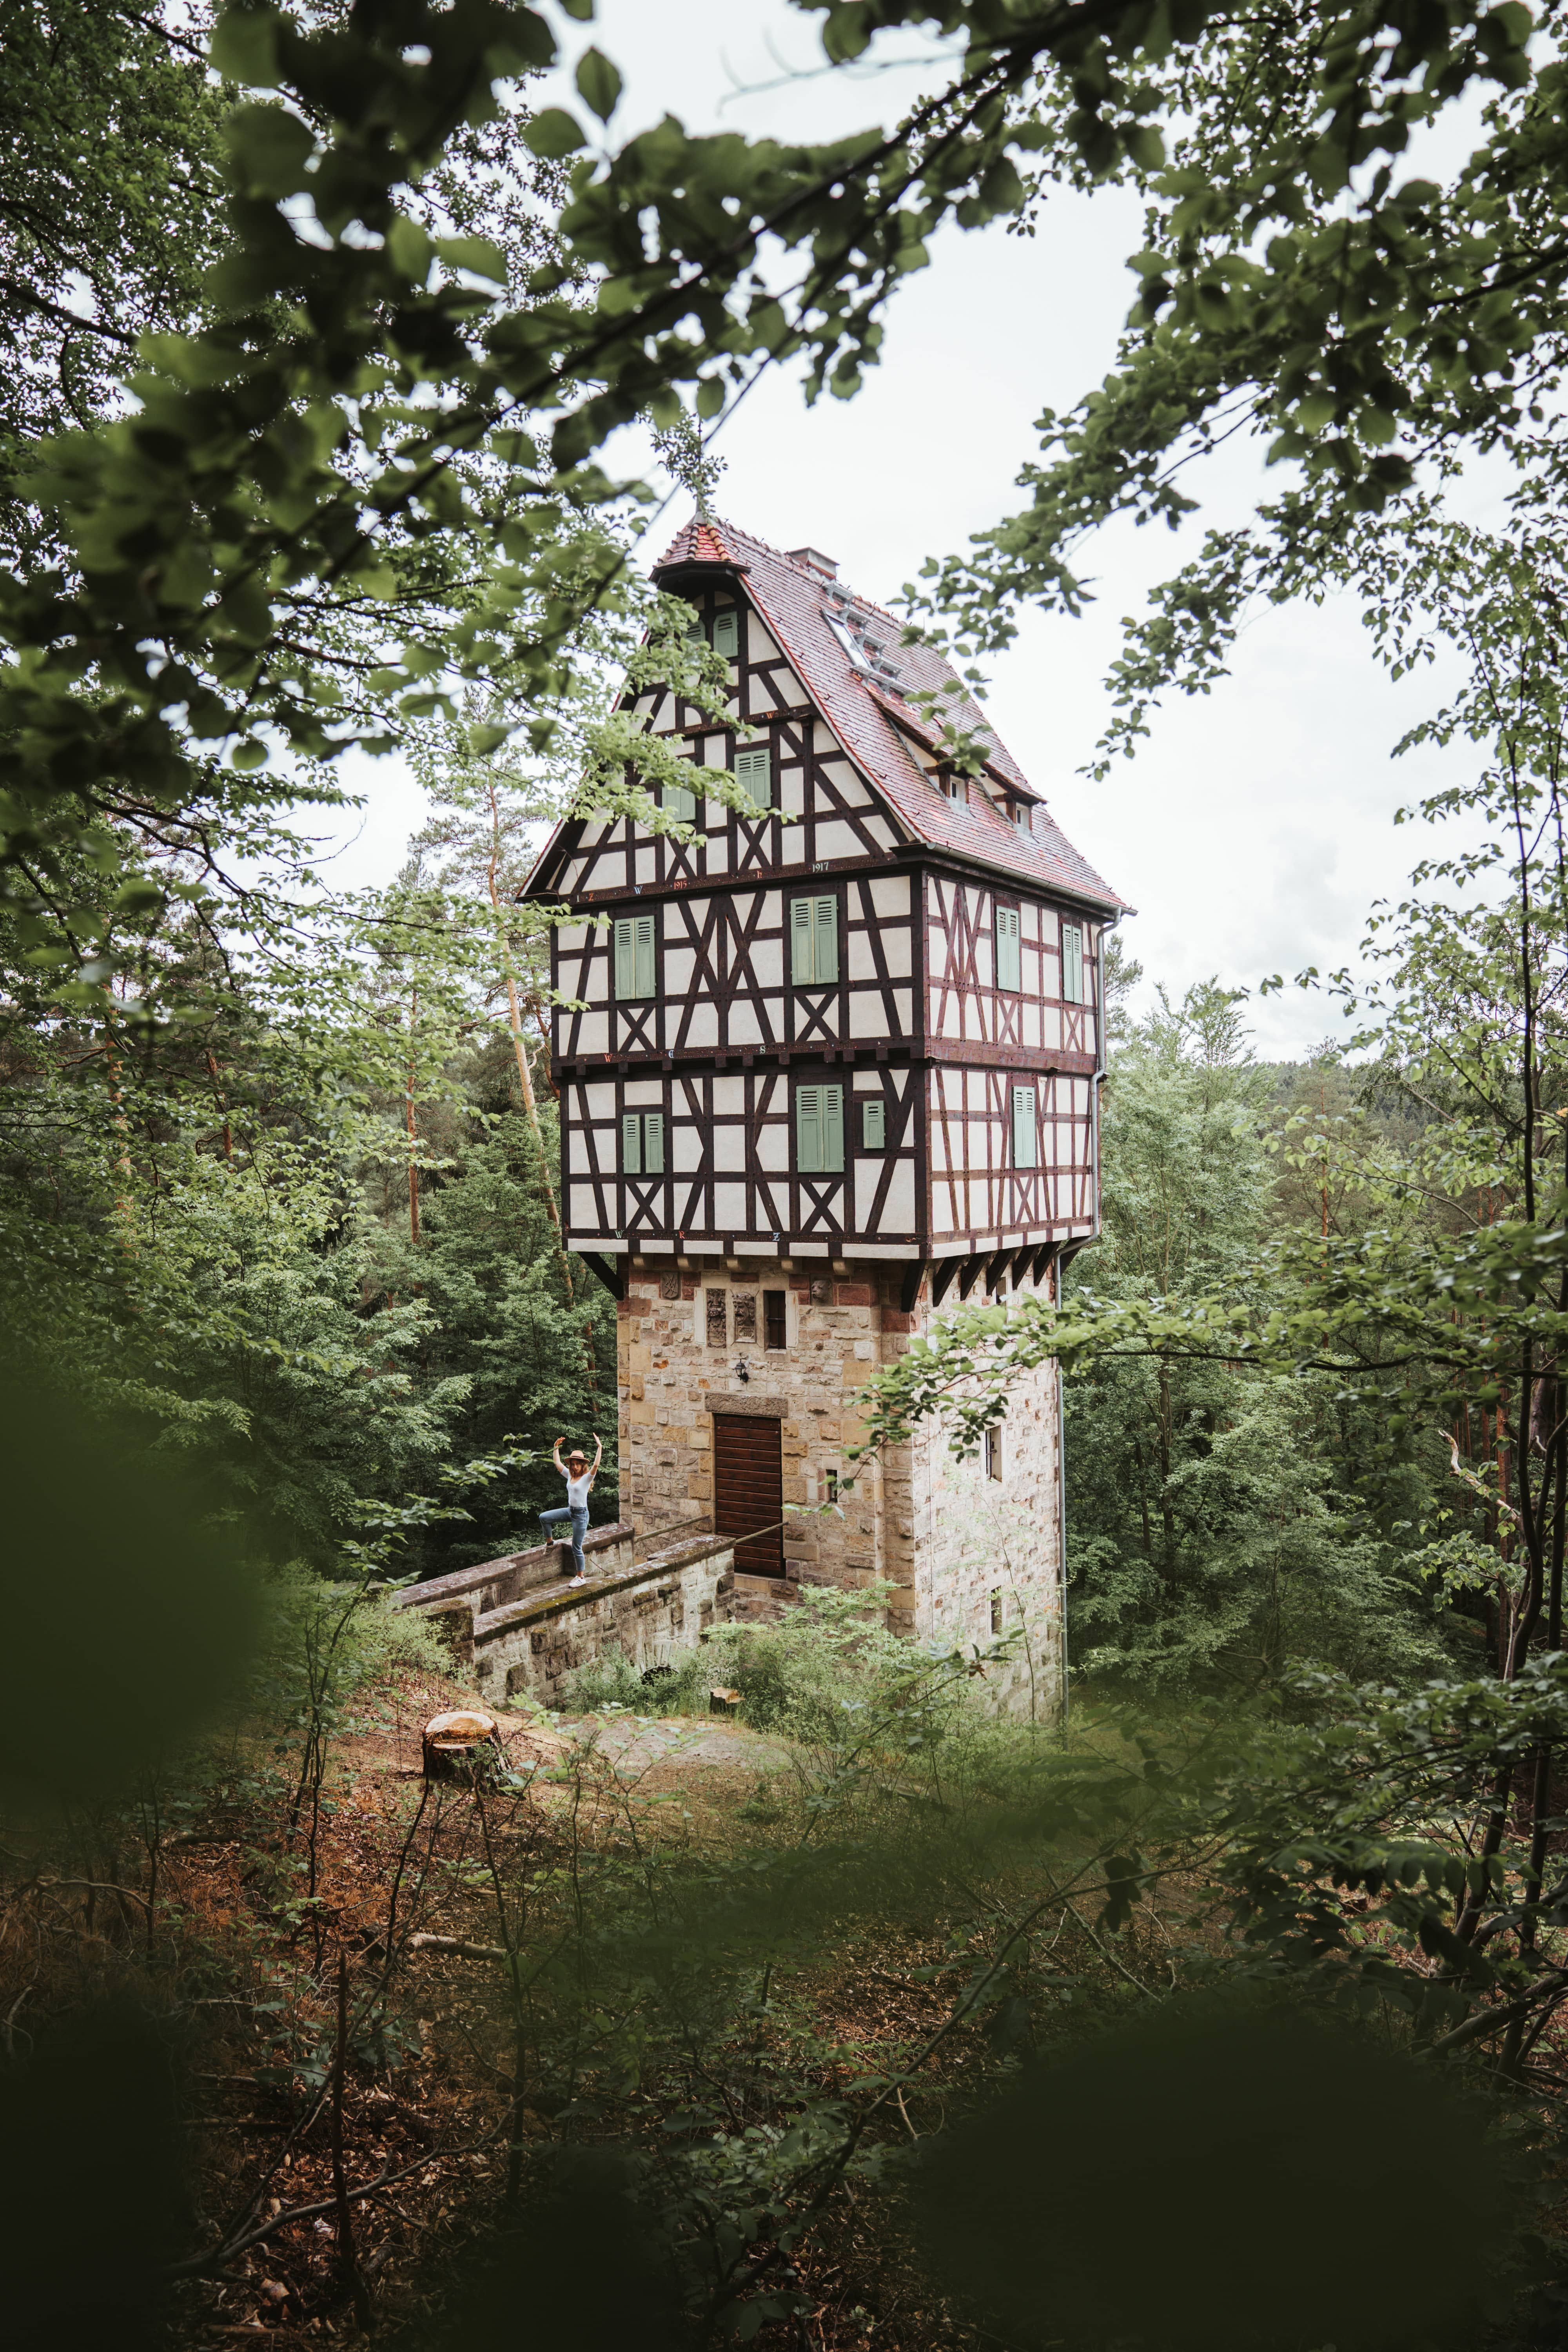 tower shaped building in the middle of Thüringen Germany surrounded by forest